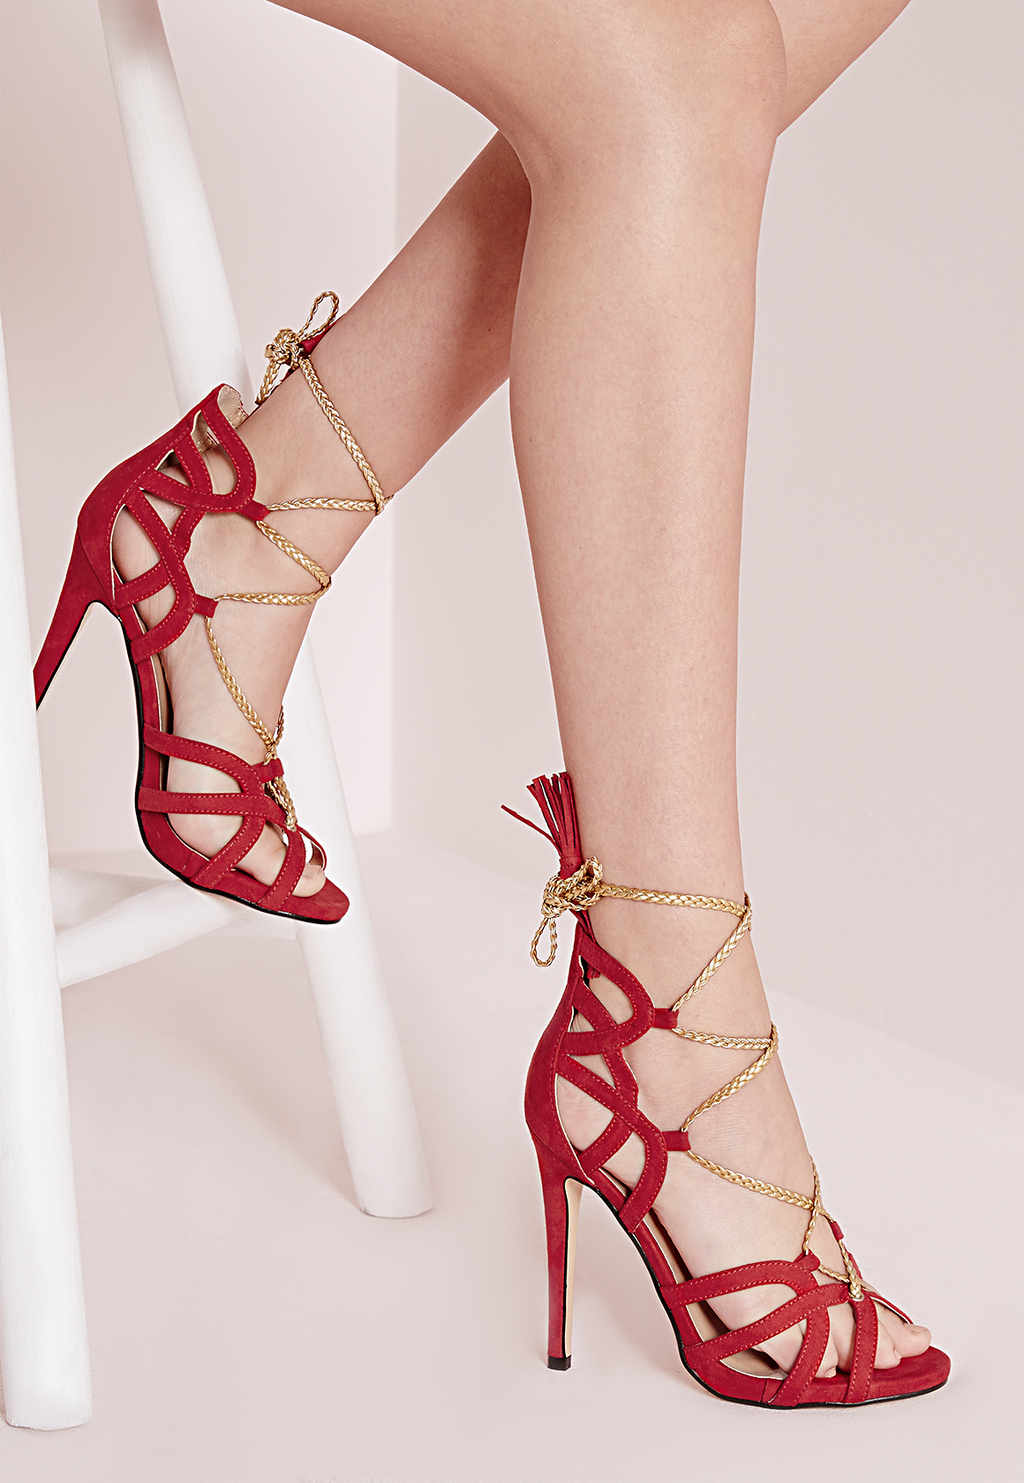 Plaited Rope Lace Up Heeled Sandals Red, Red - predominant colour: true red; occasions: evening, occasion; material: faux leather; heel height: high; ankle detail: ankle tie; heel: stiletto; toe: open toe/peeptoe; style: strappy; finish: plain; pattern: plain; season: a/w 2015; wardrobe: event